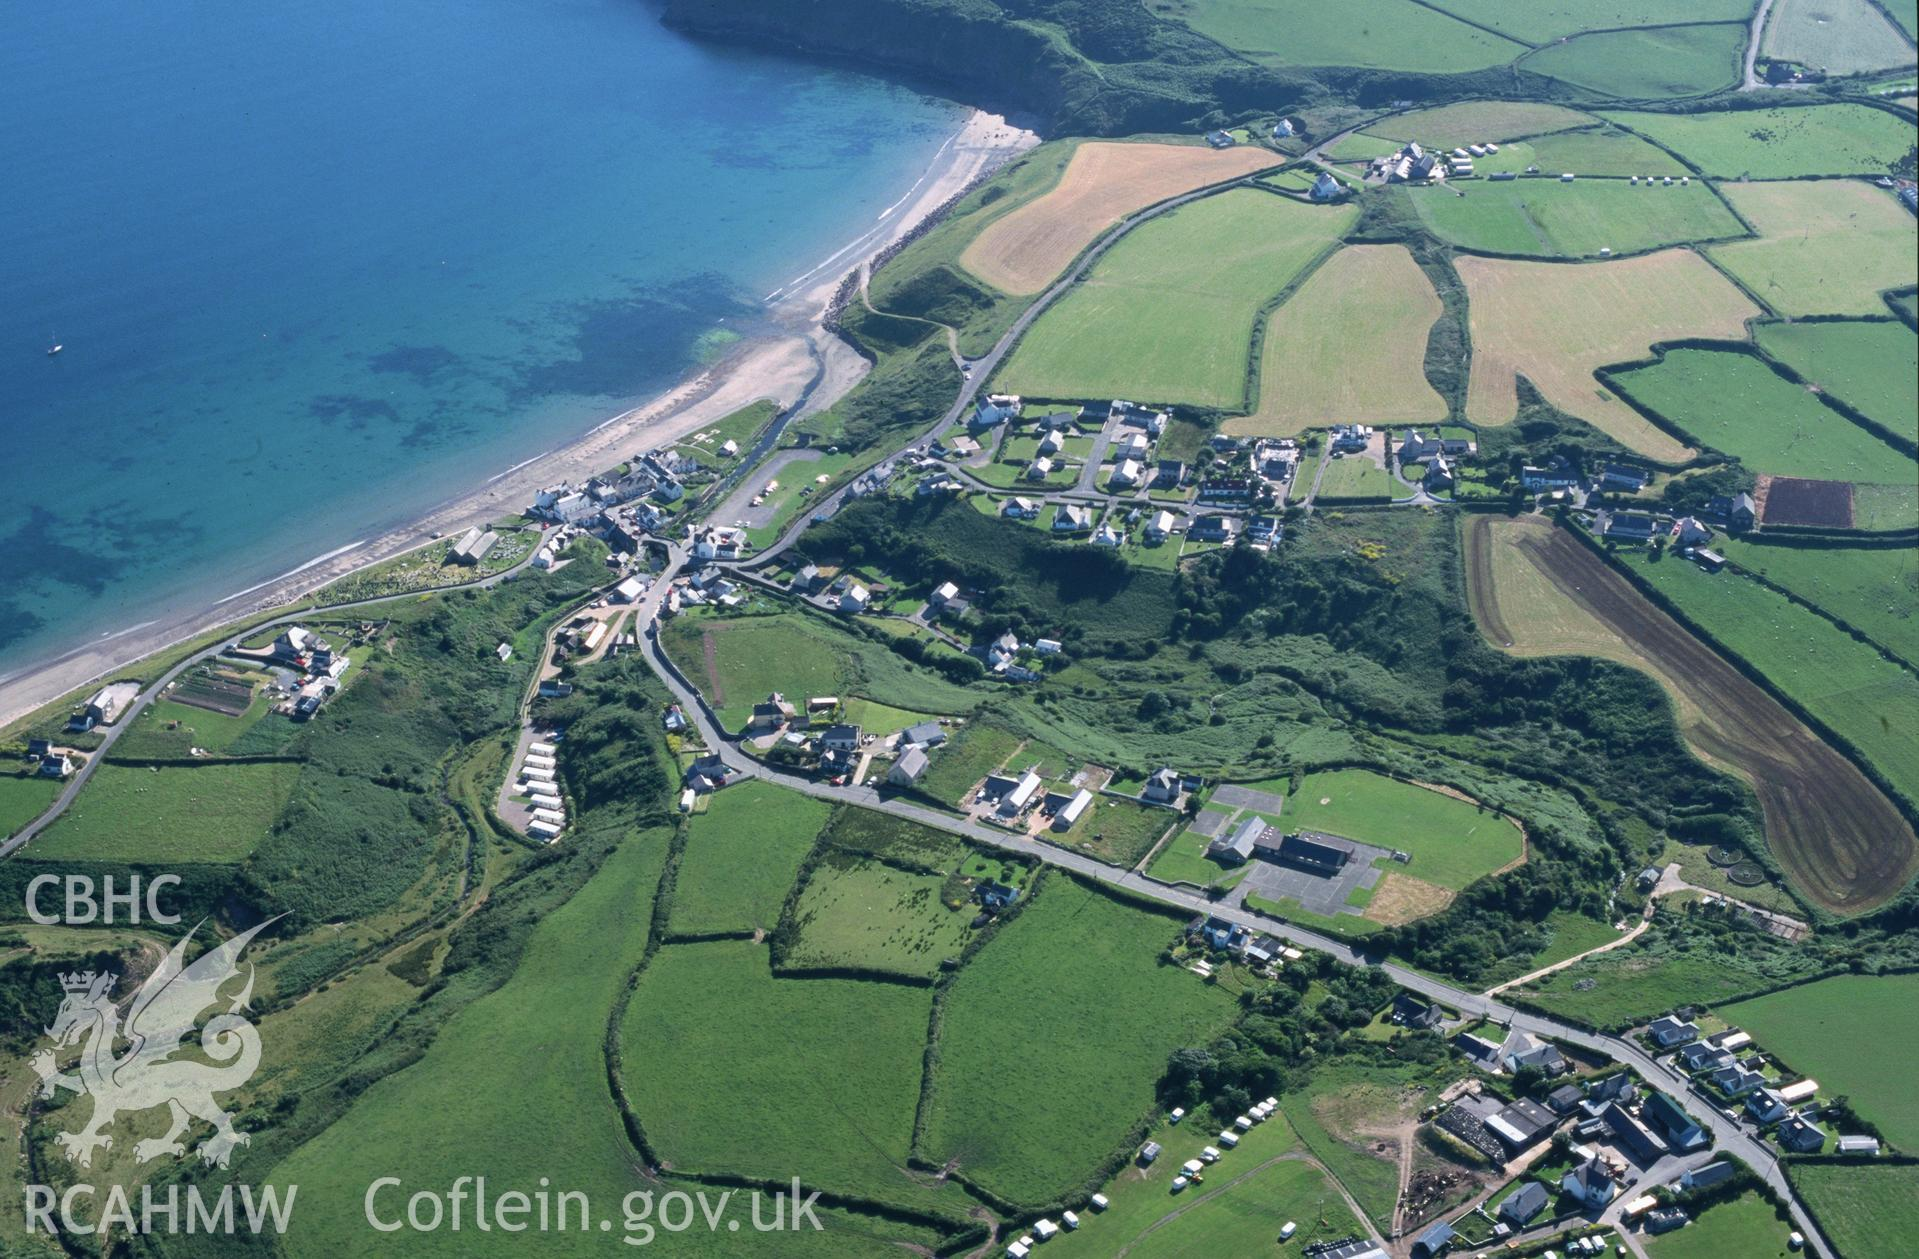 Slide of RCAHMW colour oblique aerial photograph of Aberdaron, taken by T.G. Driver, 26/6/2000.